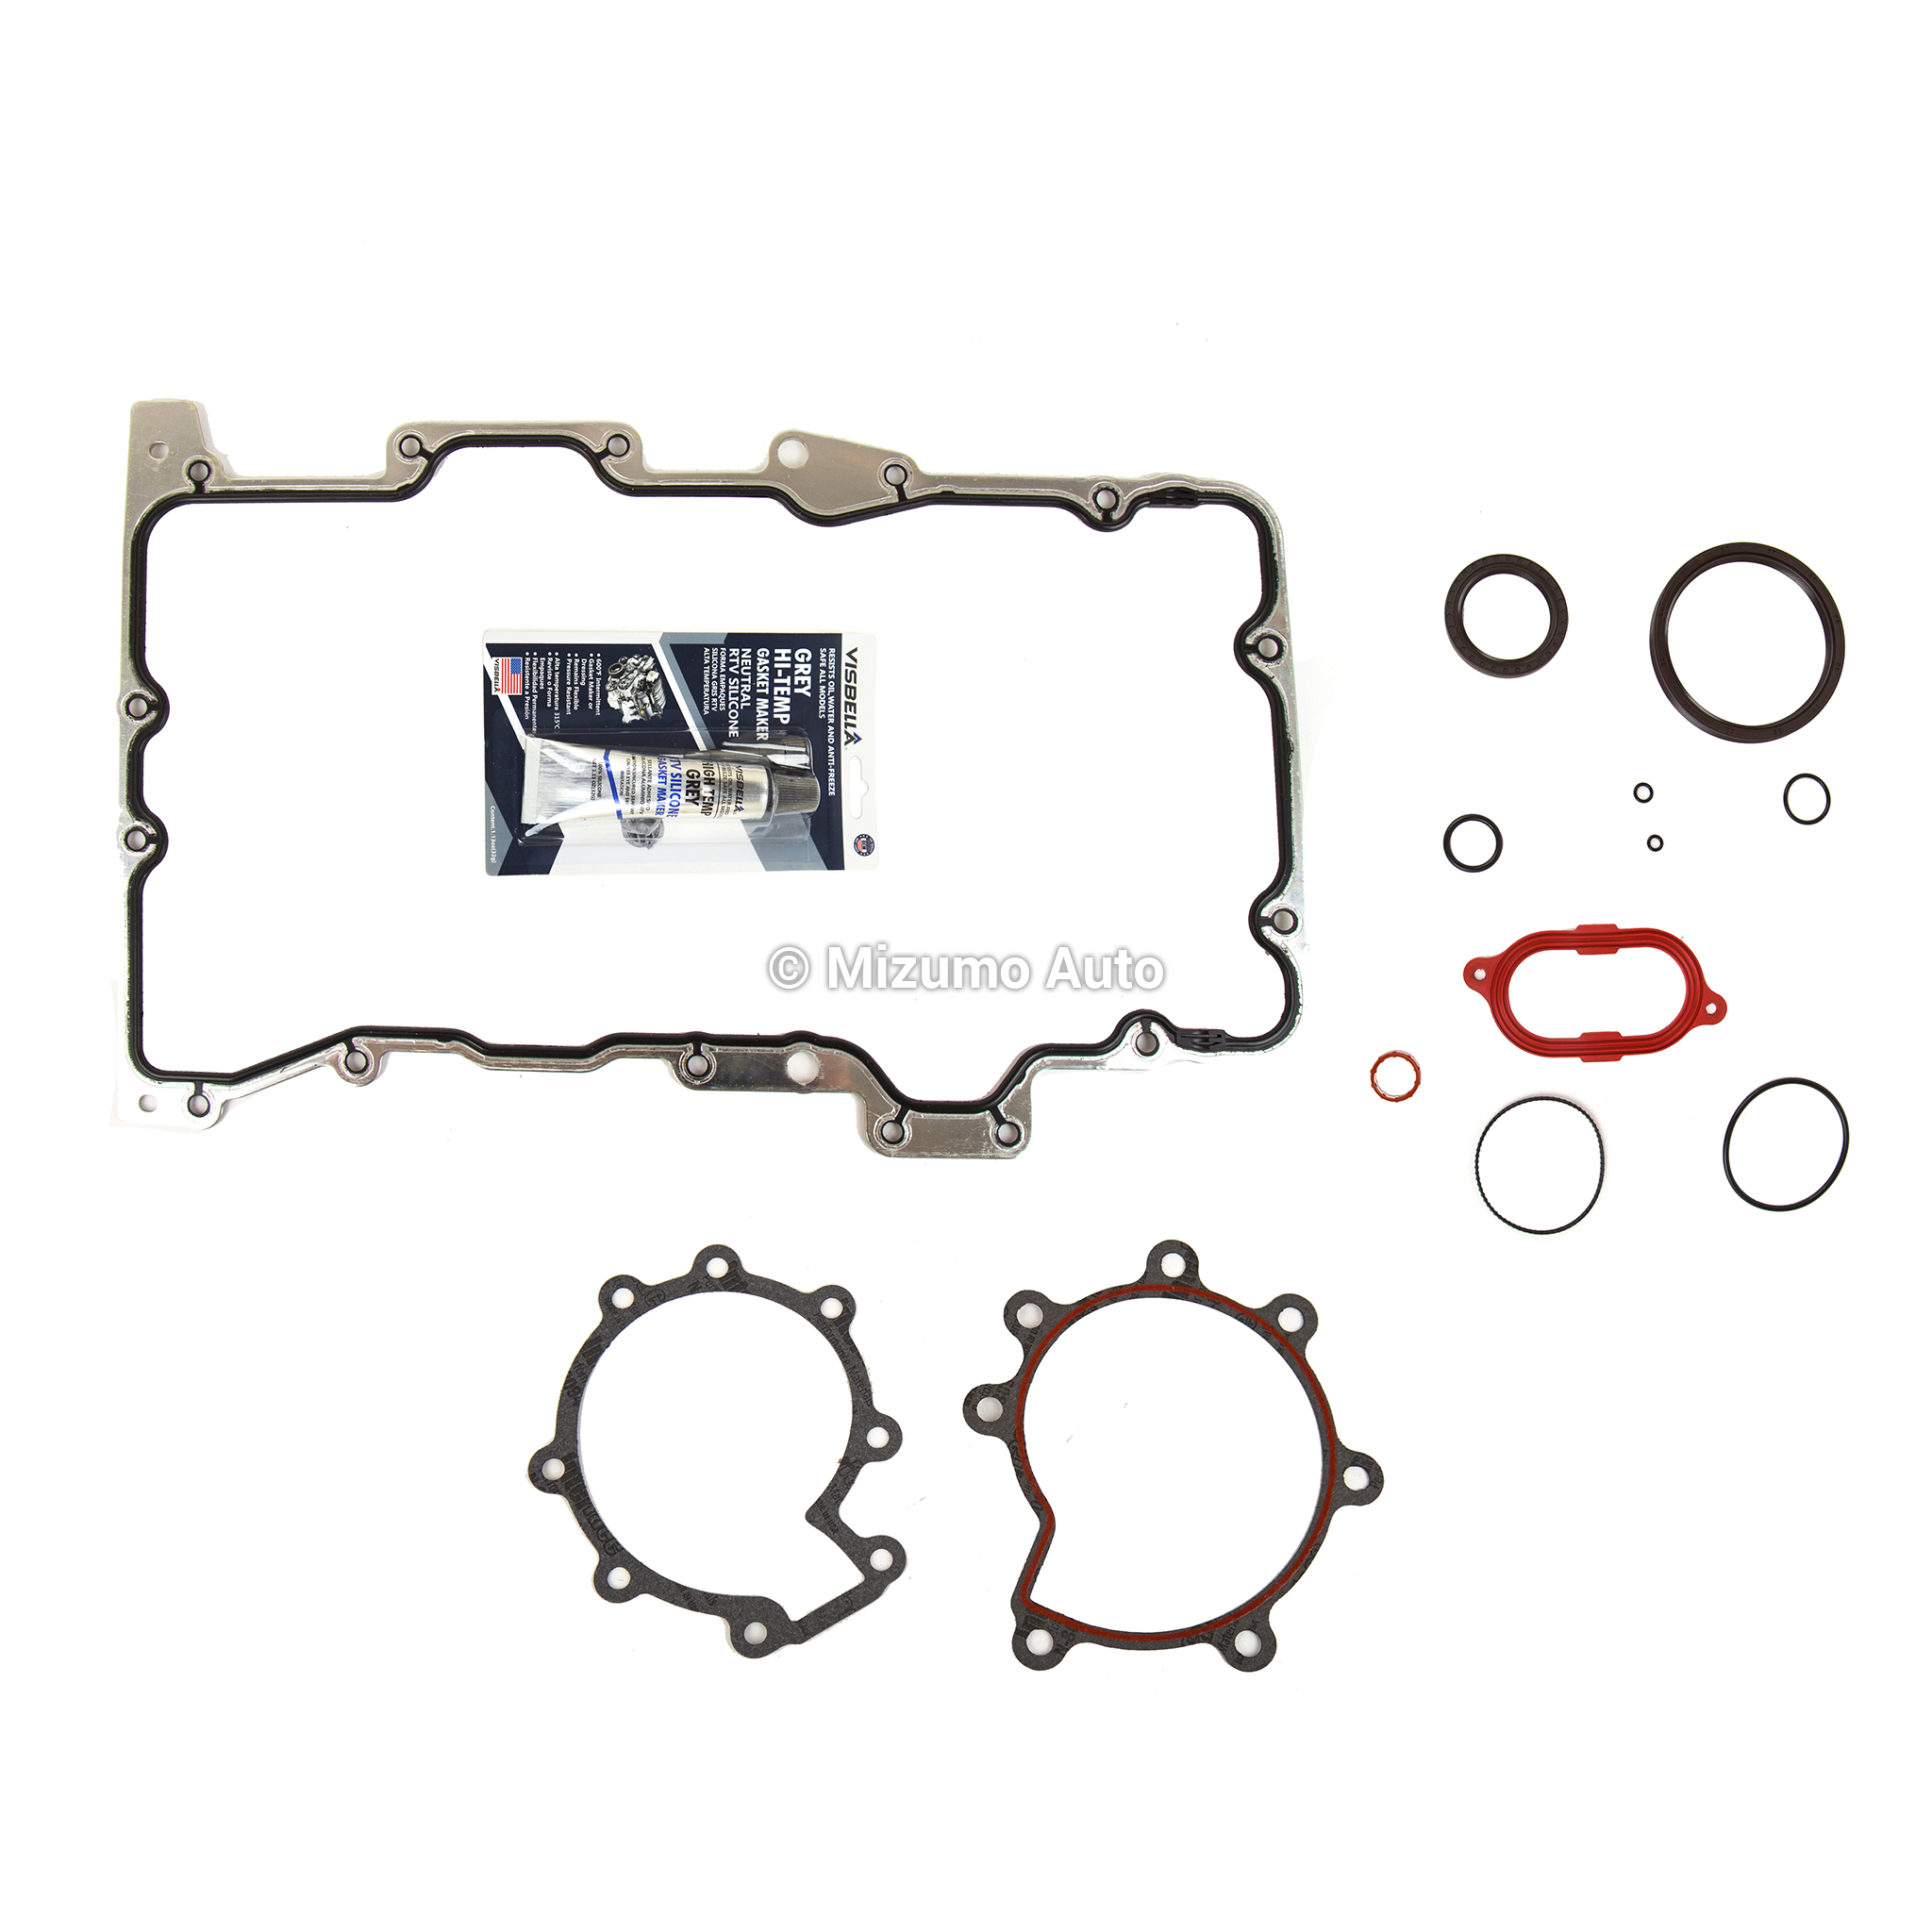 Lower Gasket Fit 02-07 Jaguar S-Type X-Type Lincoln LS 2